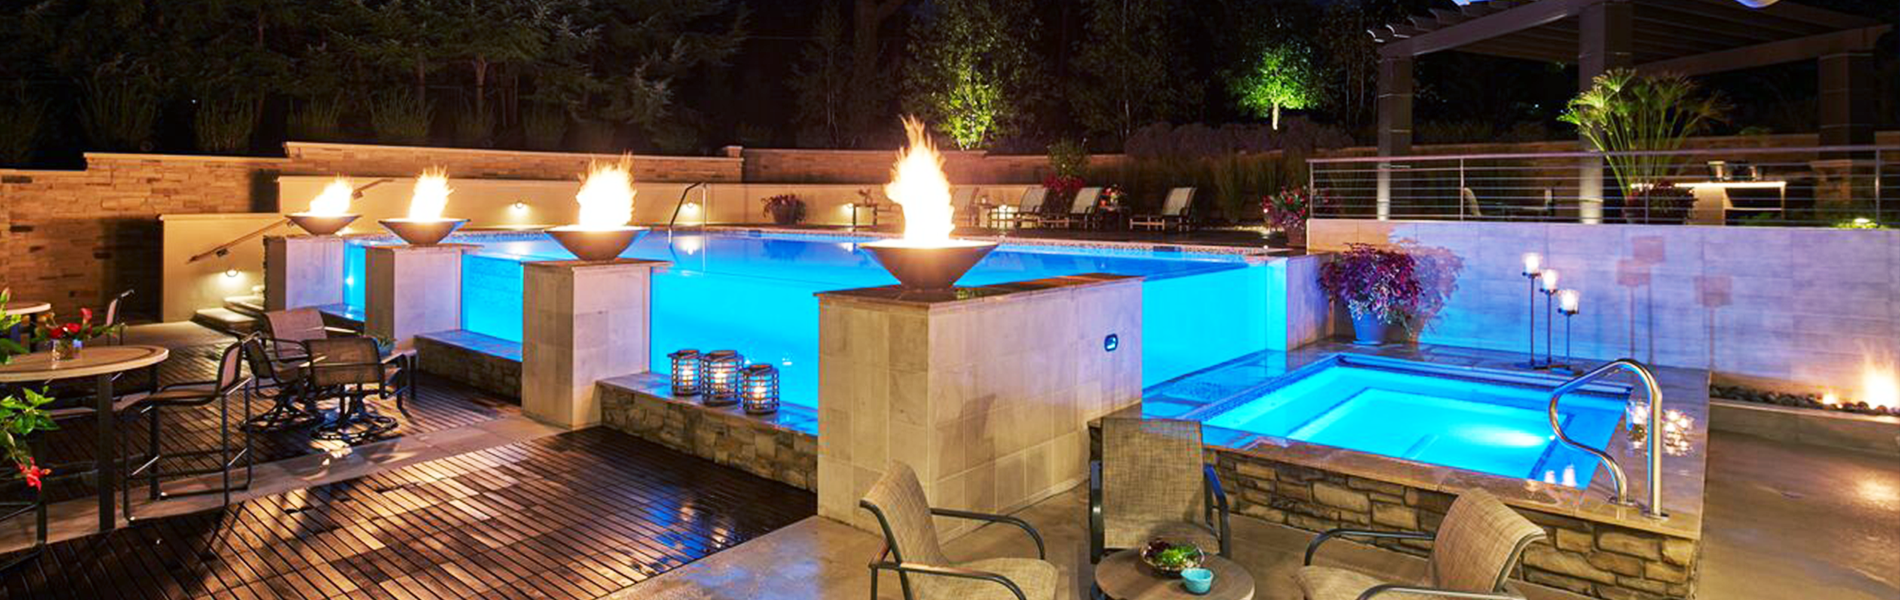 commercial swimming pool design. 410 Commercial Swimming Pool Design